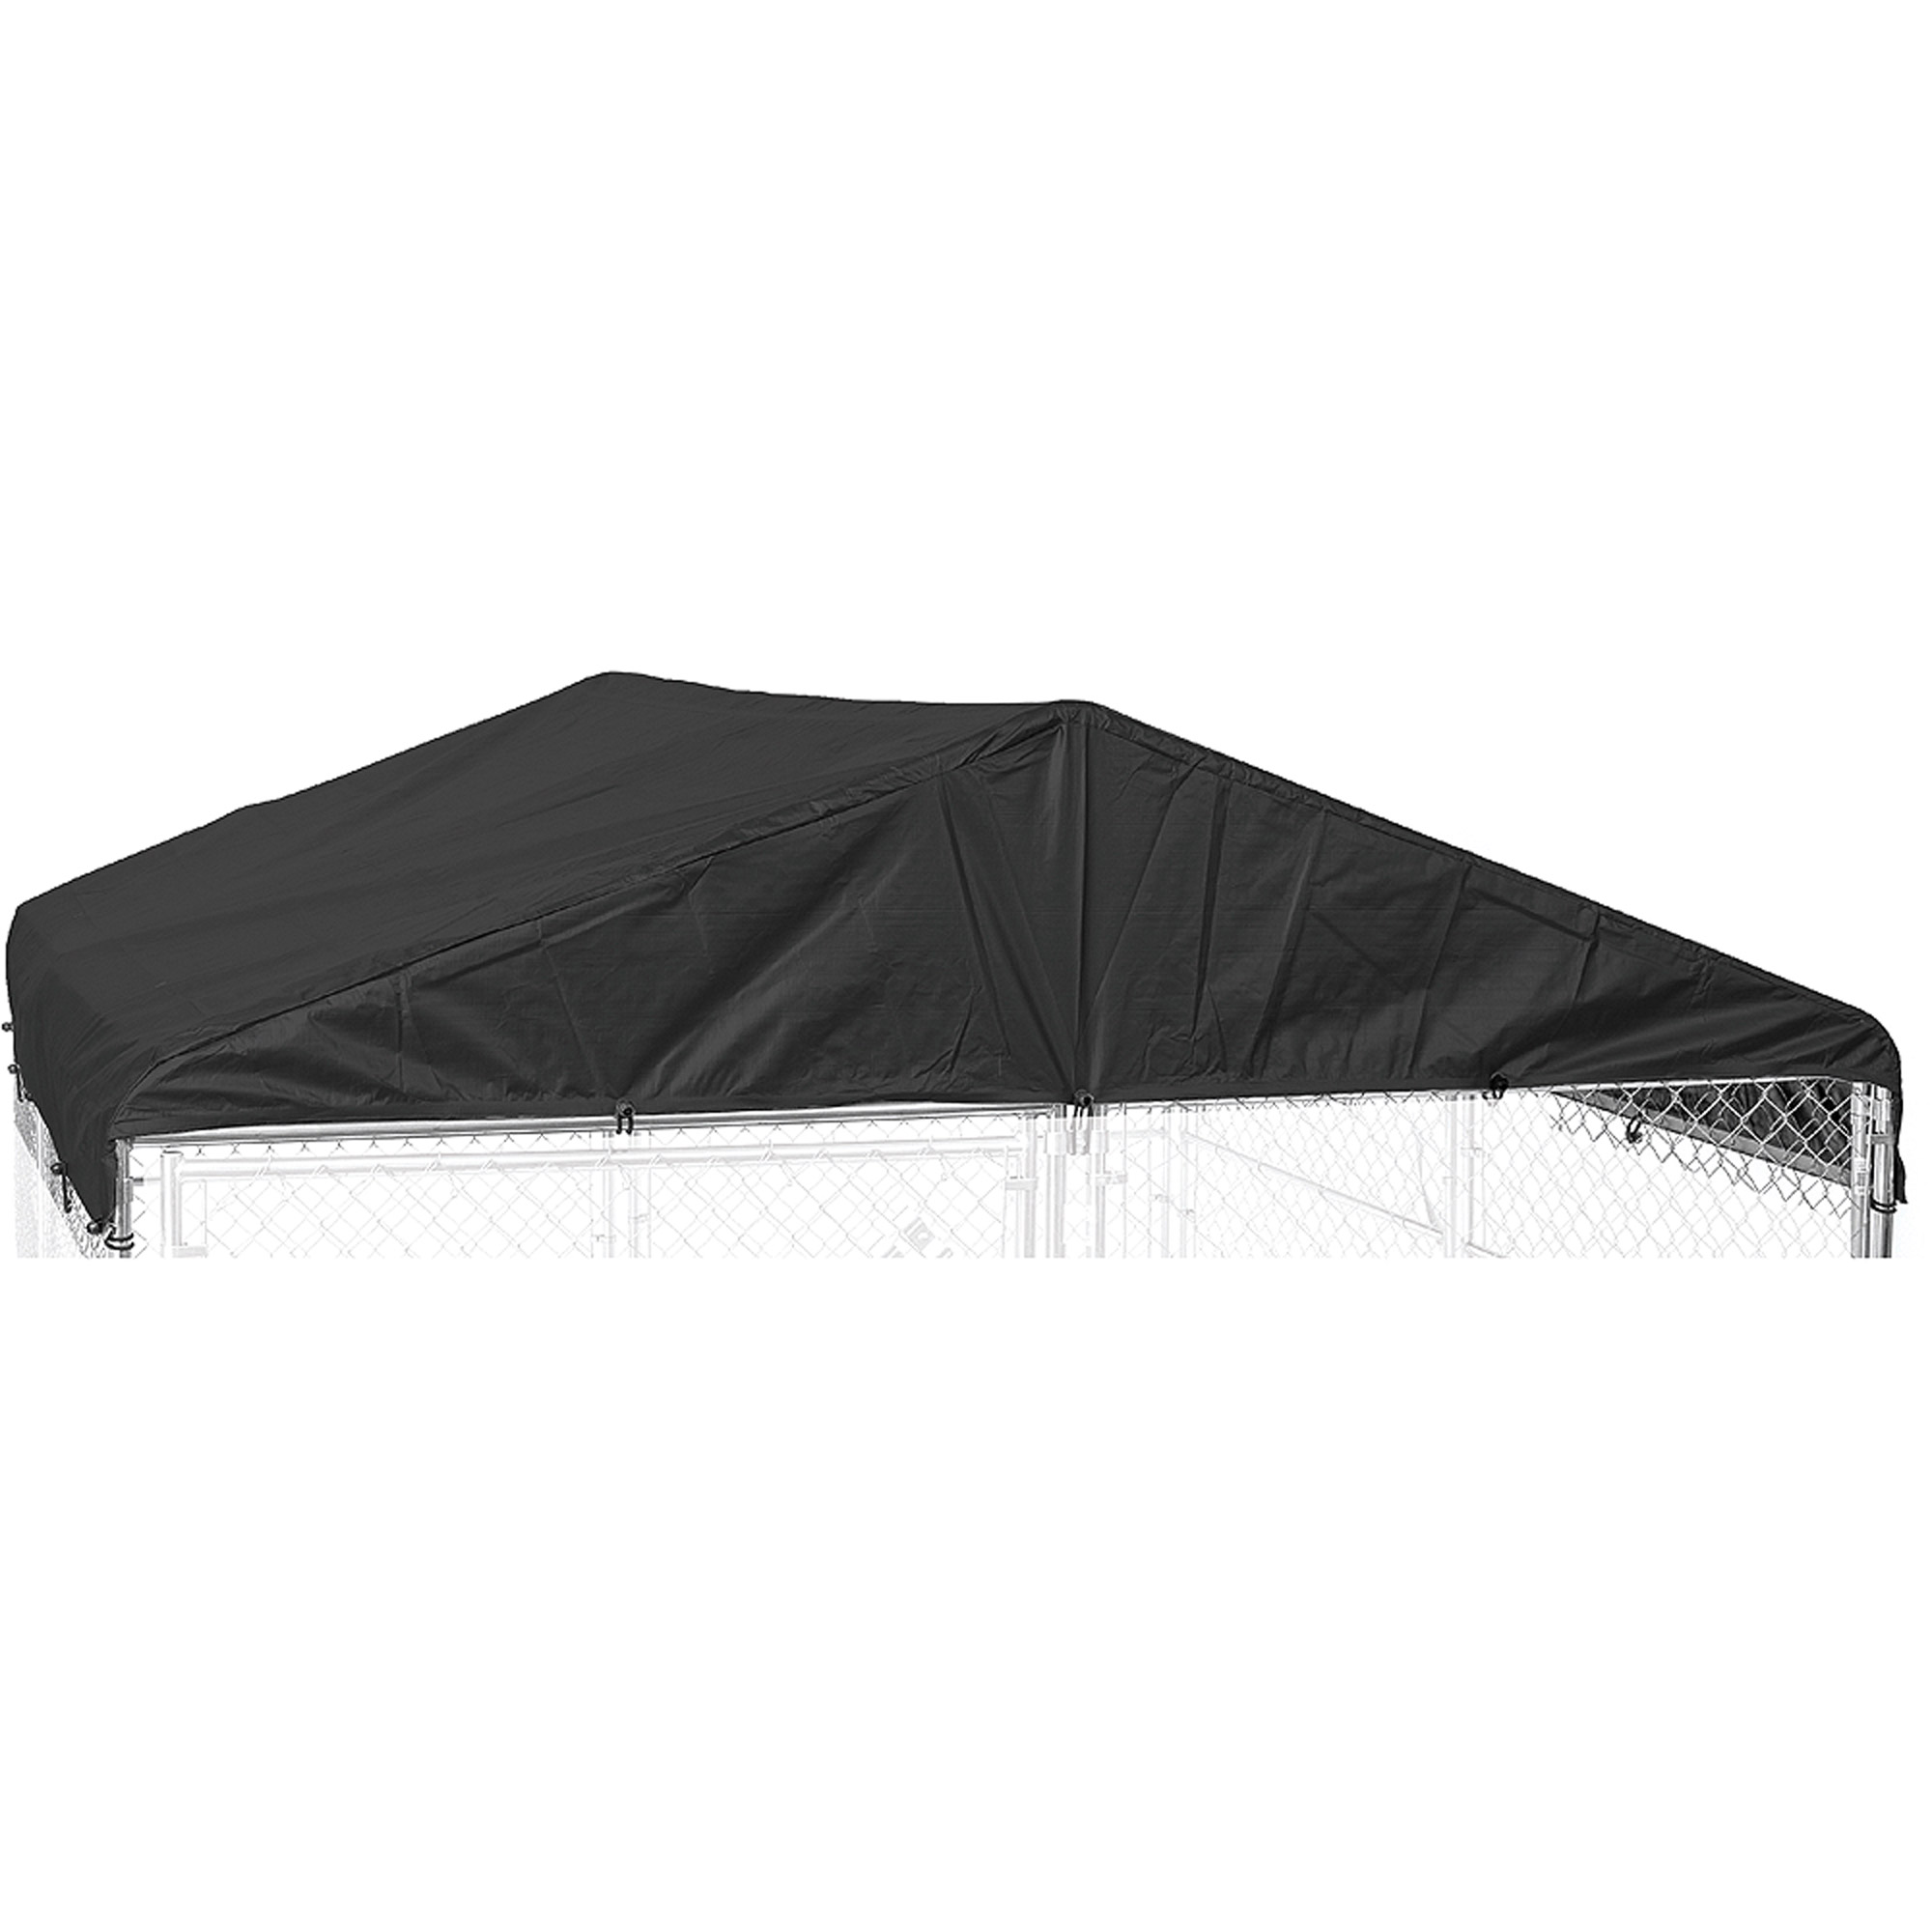 Lucky Dog Weatherguard 10'W x 10'L Kennel Frame and Cover Set